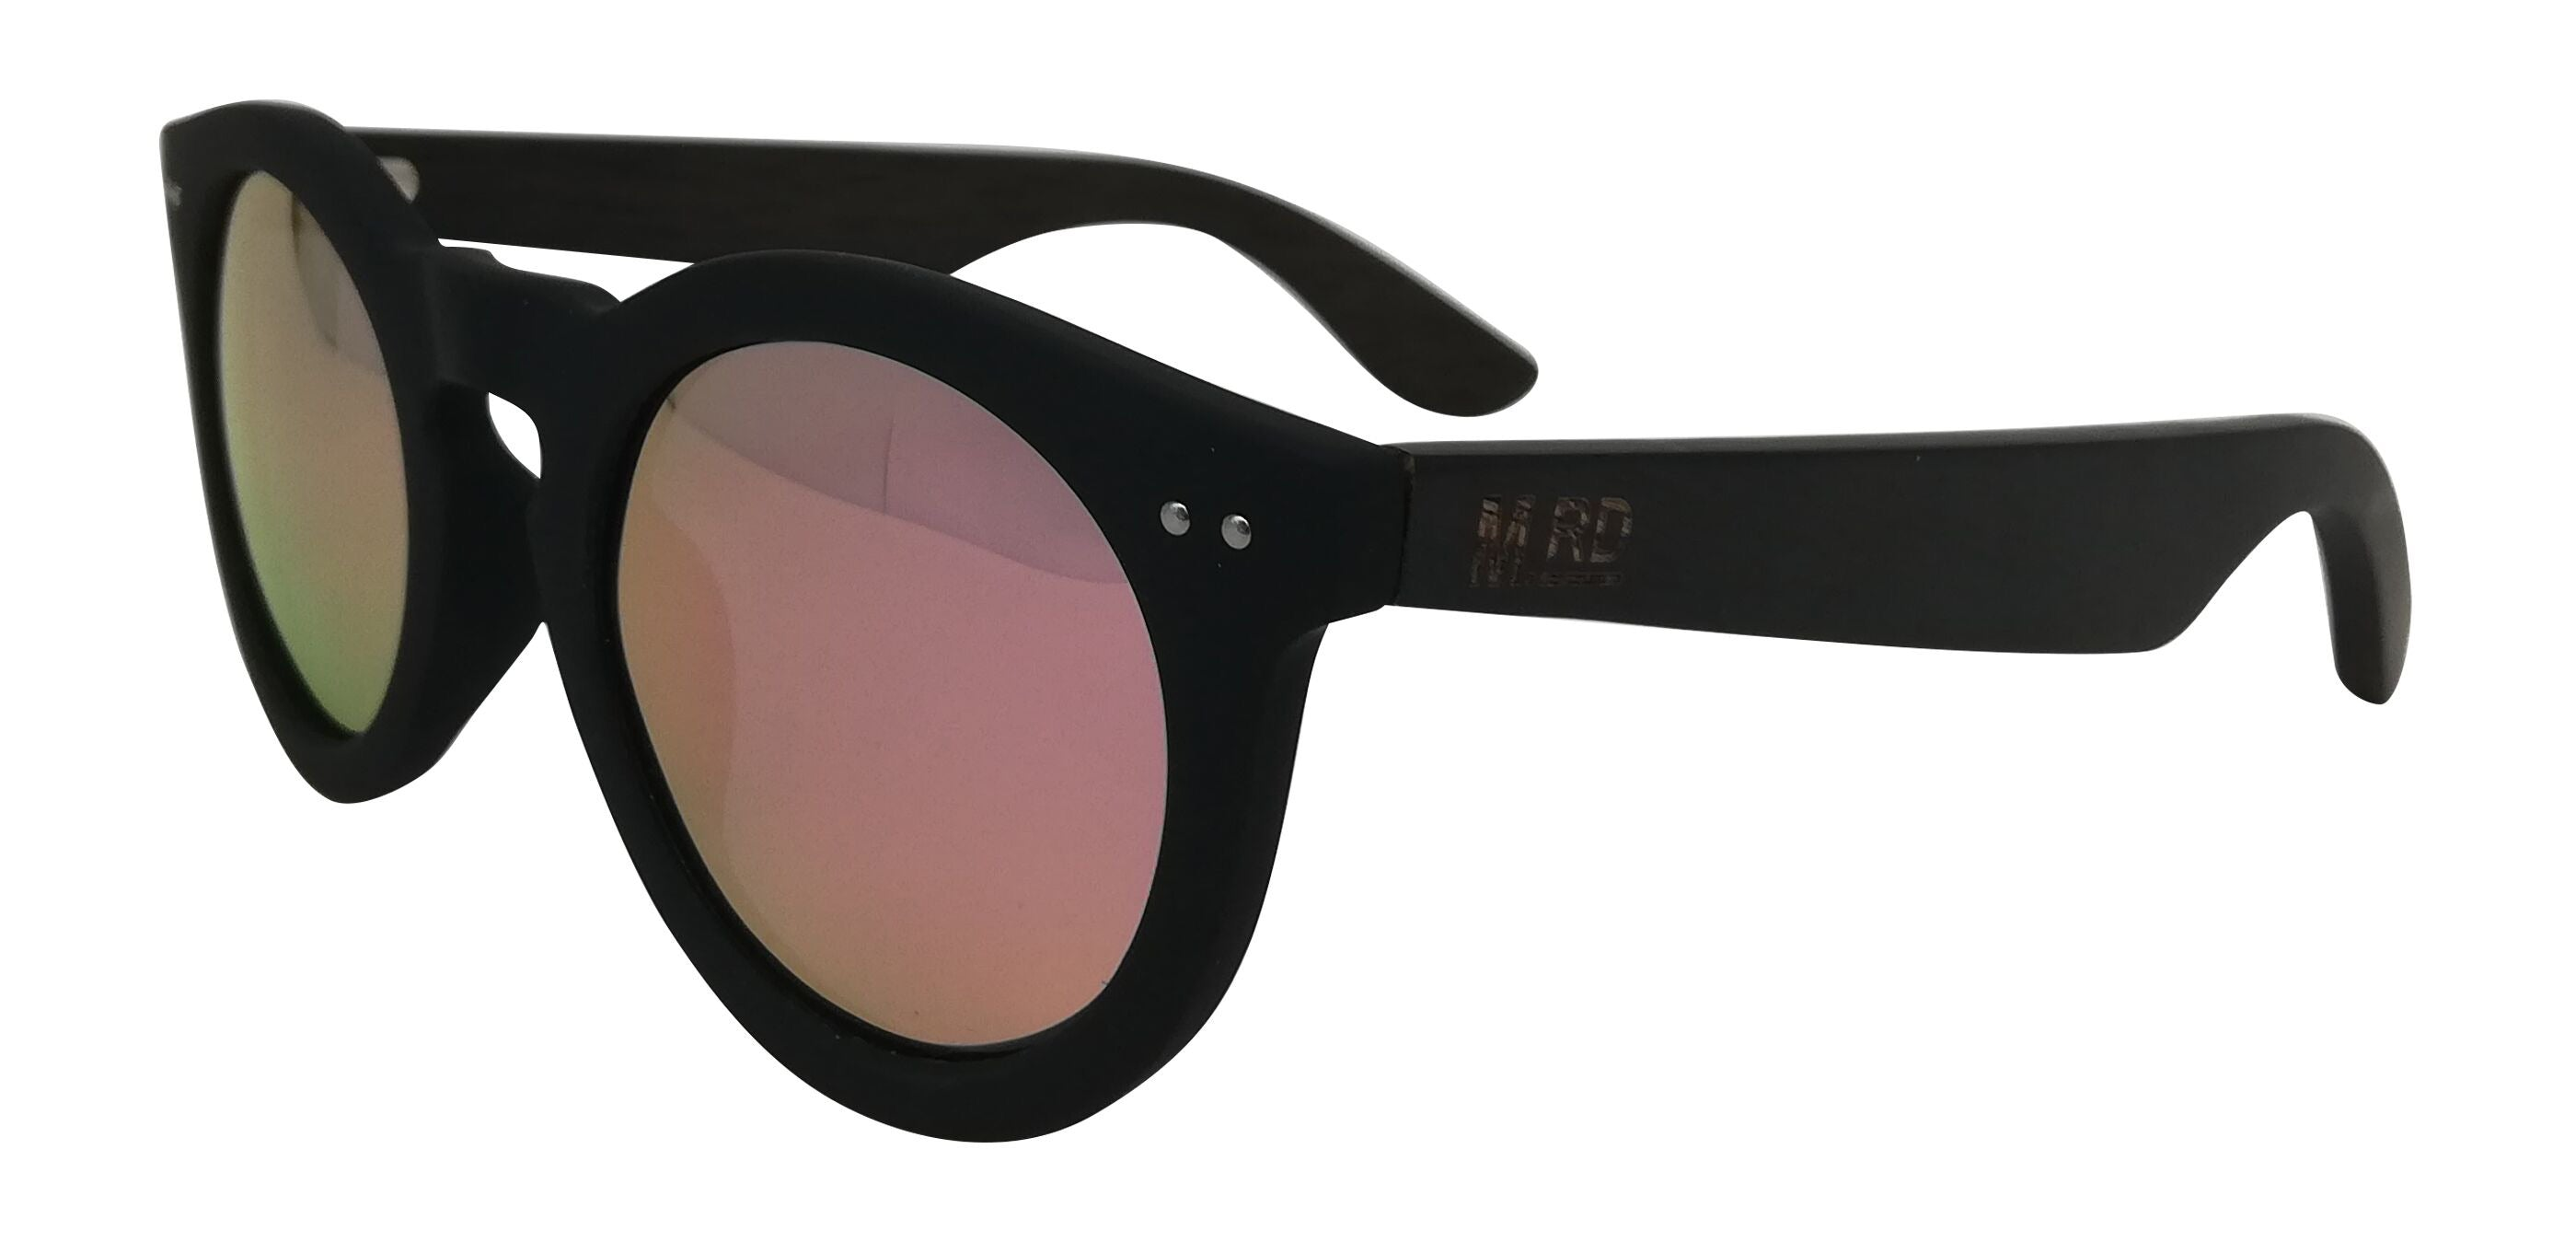 Moana Road Sunglasses Grace Kelly 3301